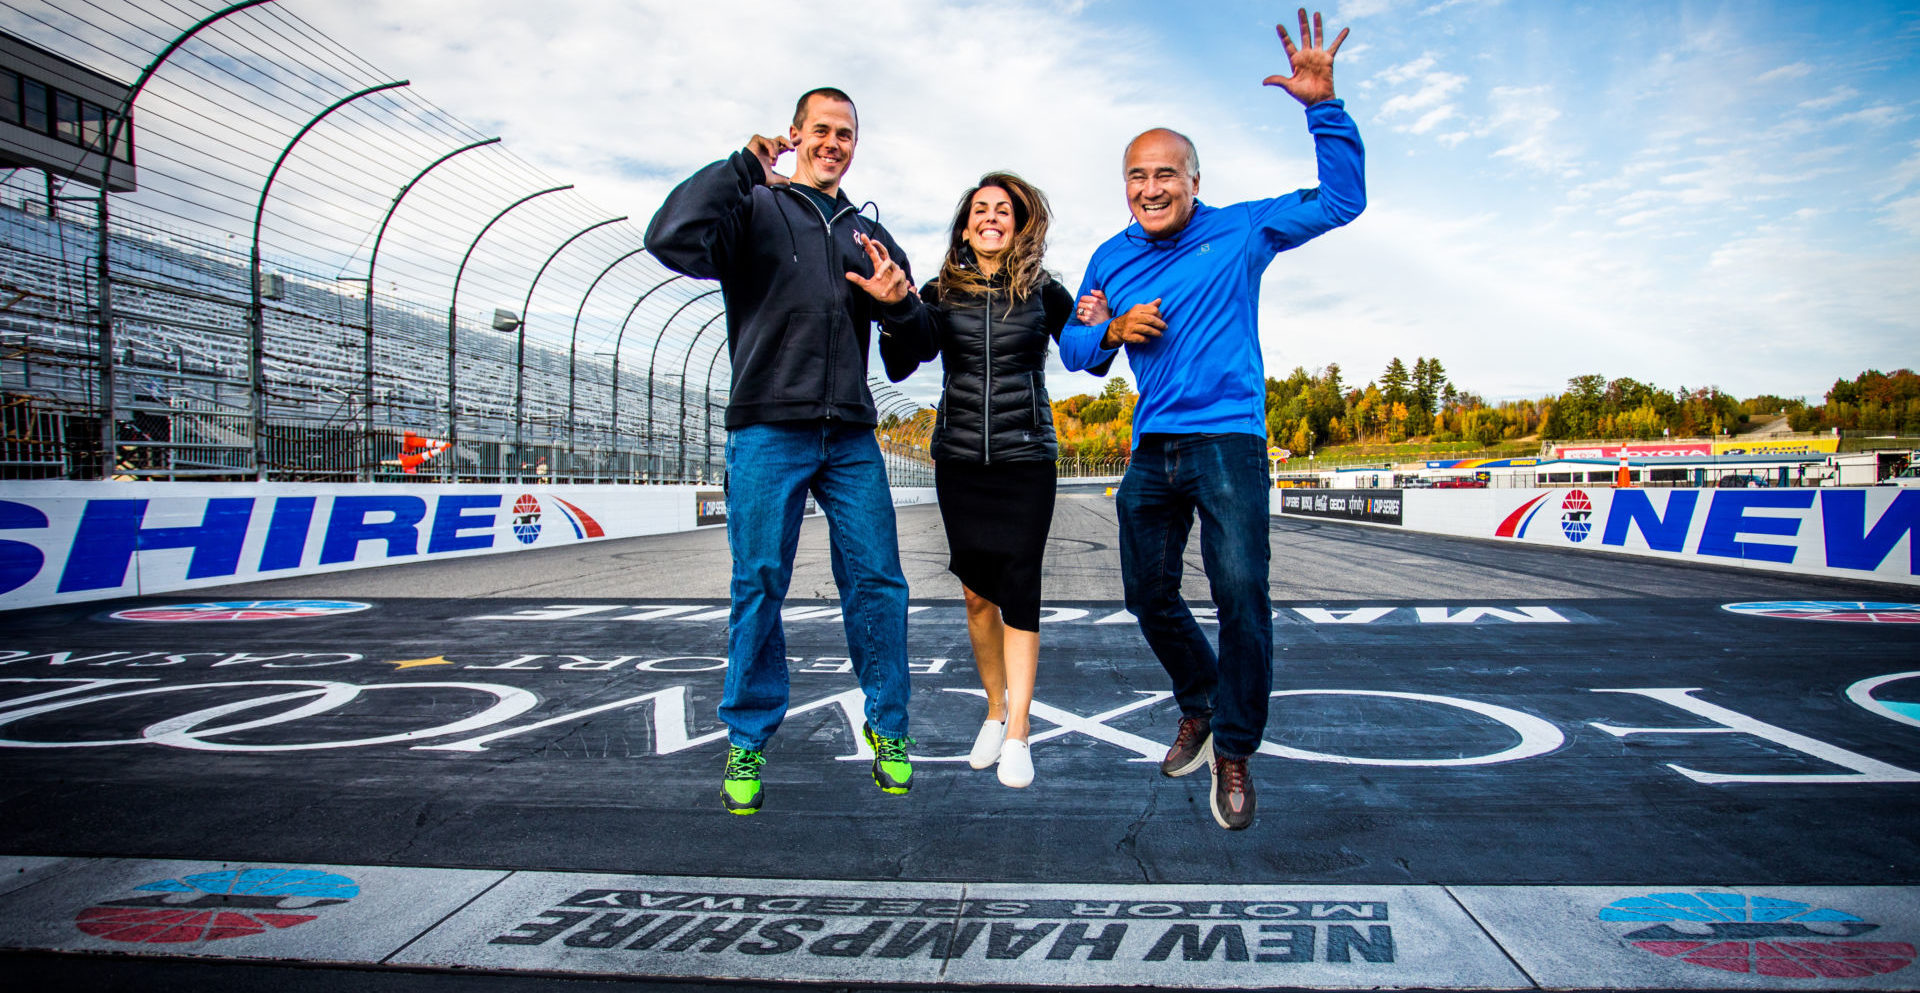 Eric Wood (left) and John Grush (right), the new owners of the Loudon Road Race Series (LRRS) which is soon to become North East Motorcycle Road Racing (NEMRR), with Series Director Noelle Doucette (center). Photo by Sarah Delia, courtesy LRRS/NEMRR.